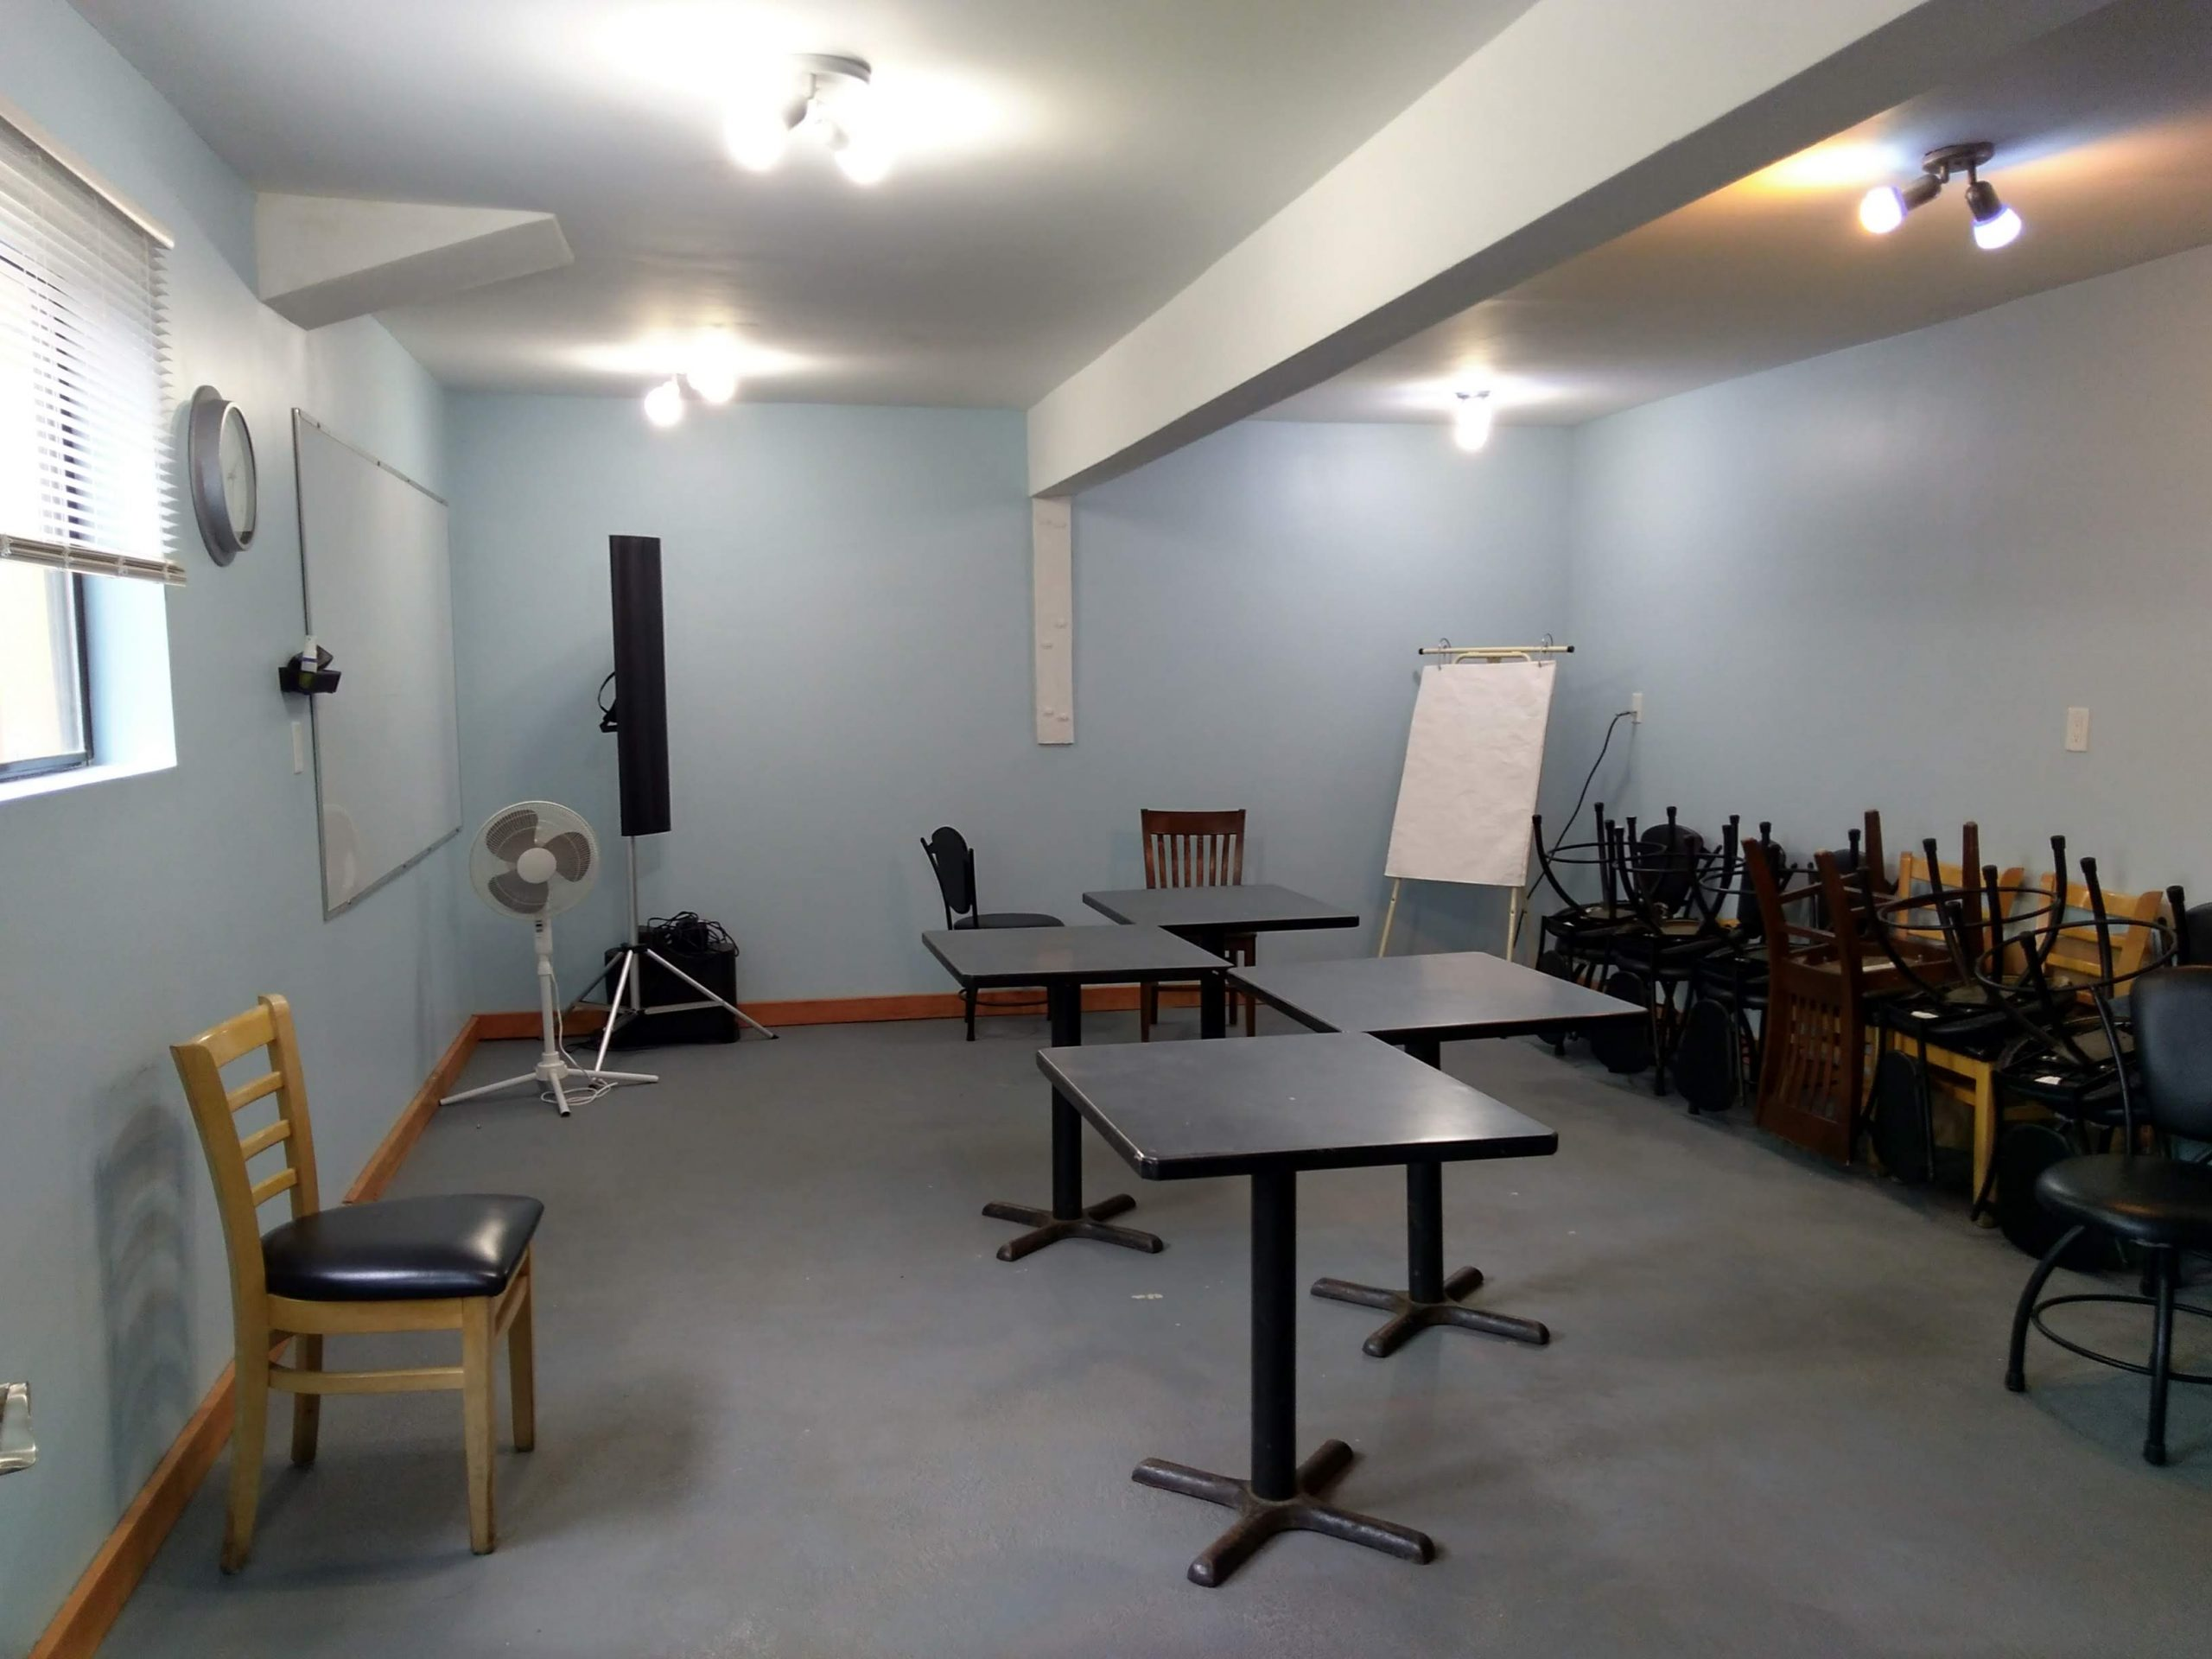 Looking for a Meeting Room or Office Space?